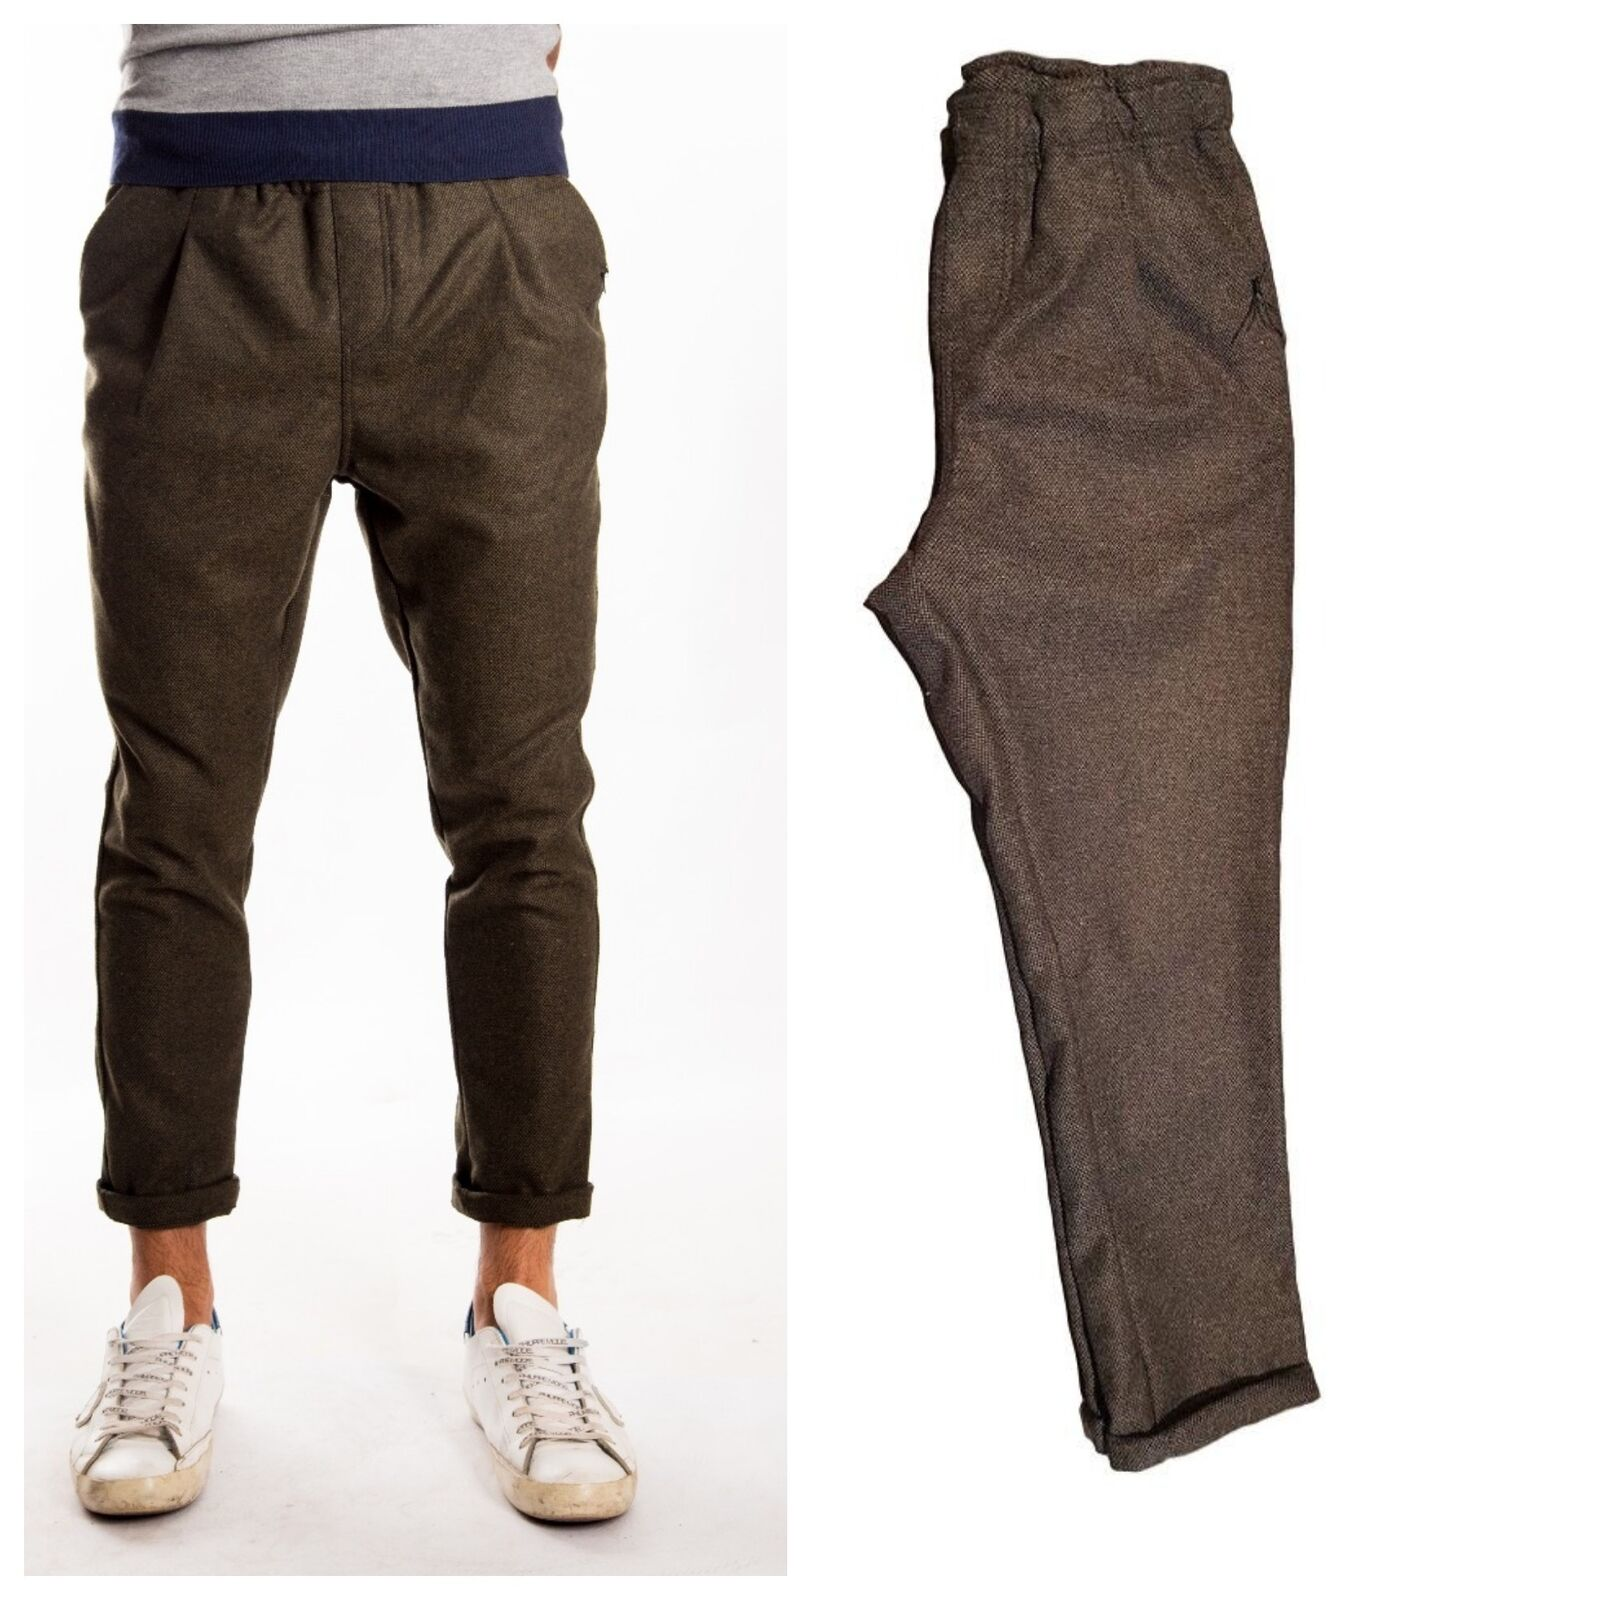 Trousers  The Kingless Collective Man 03 MIL Low Rise Carred Fit  Pences Couliss